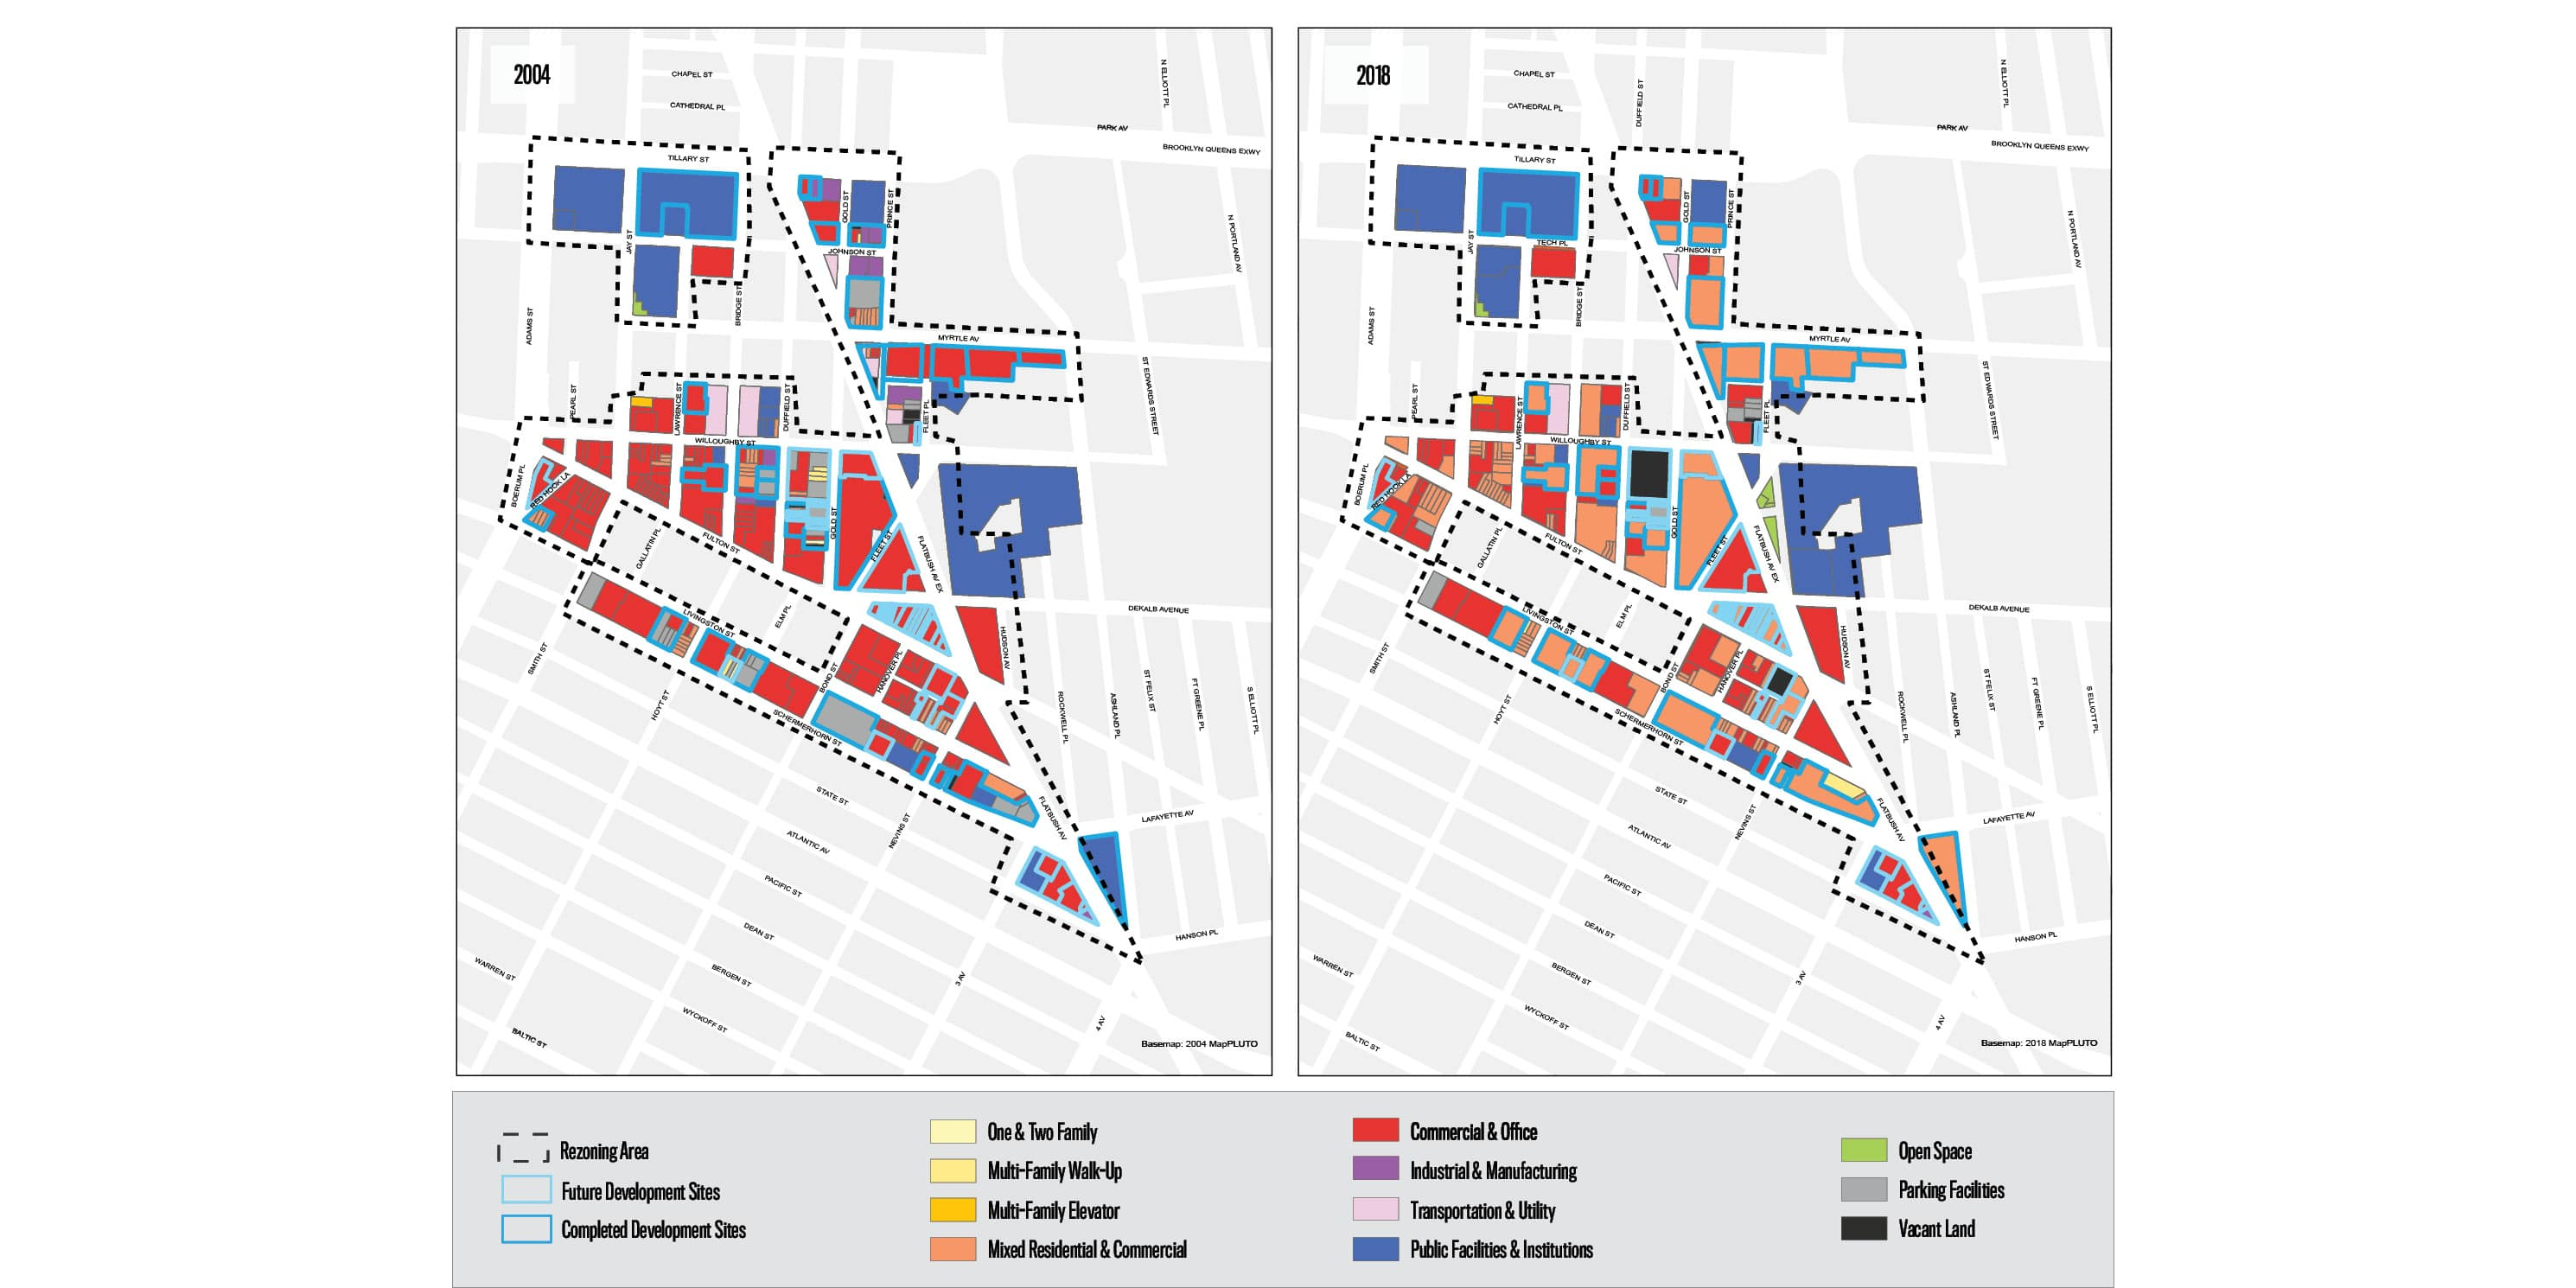 map showing land use in Downtown Brooklyn